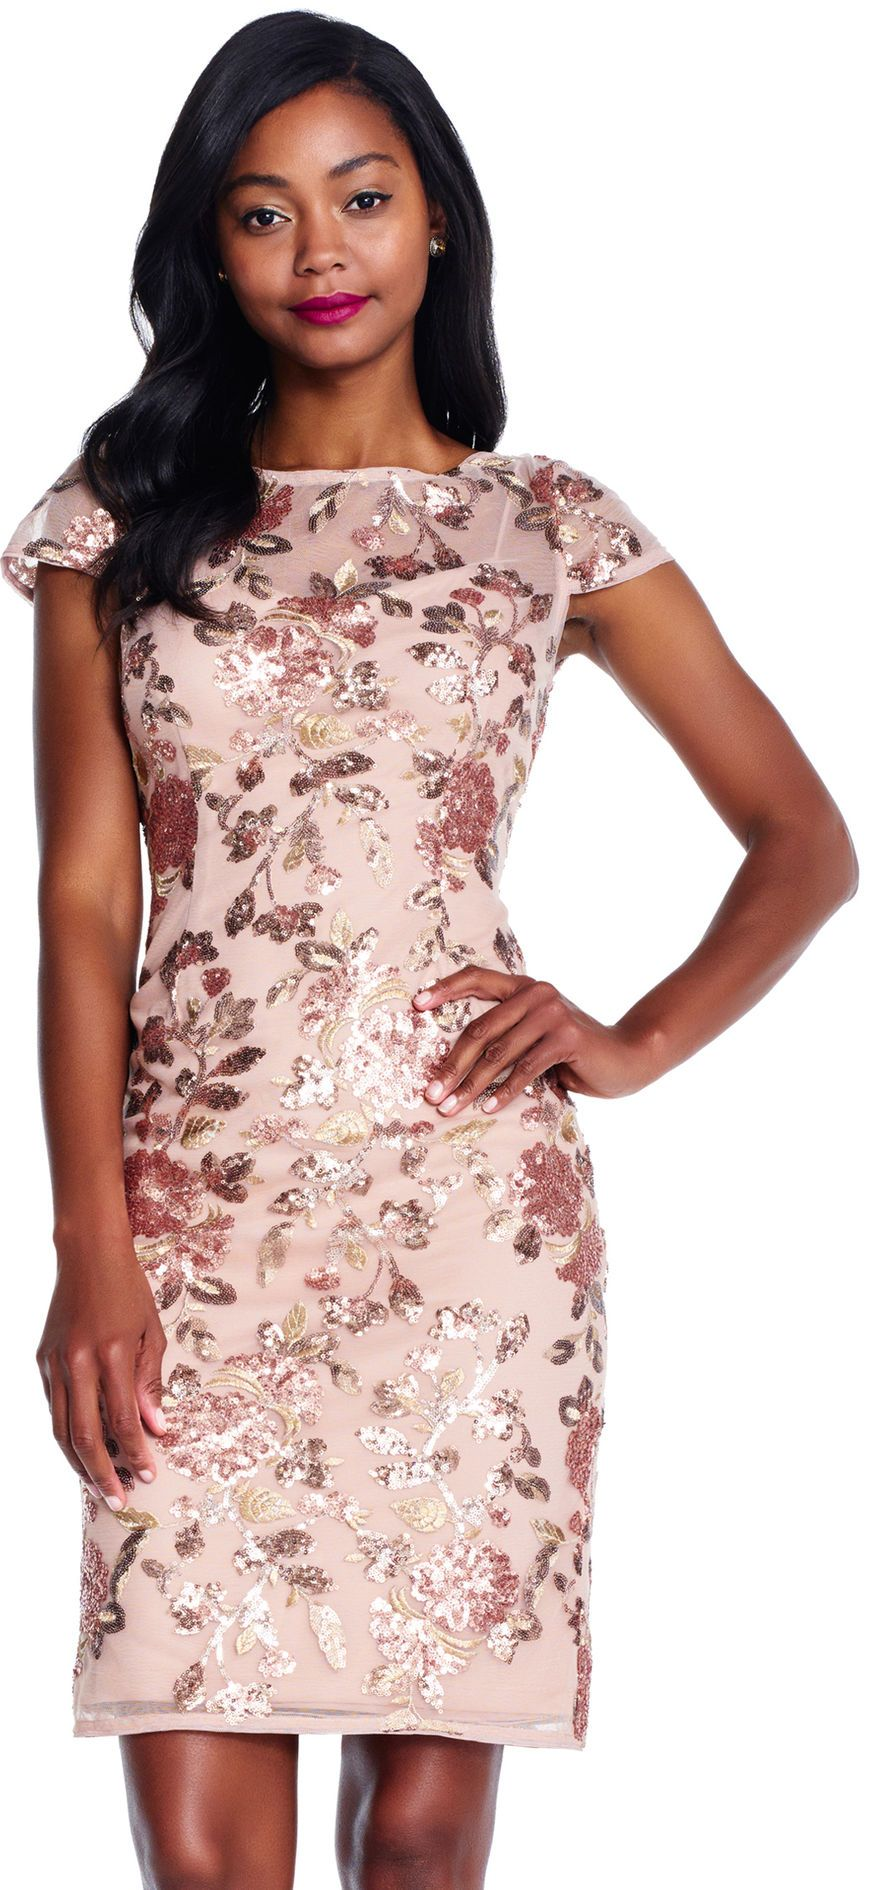 0847596e6a0f3 Short Sleeve Floral Sequin Sheath Dress in 2019 | Engagement dresses ...